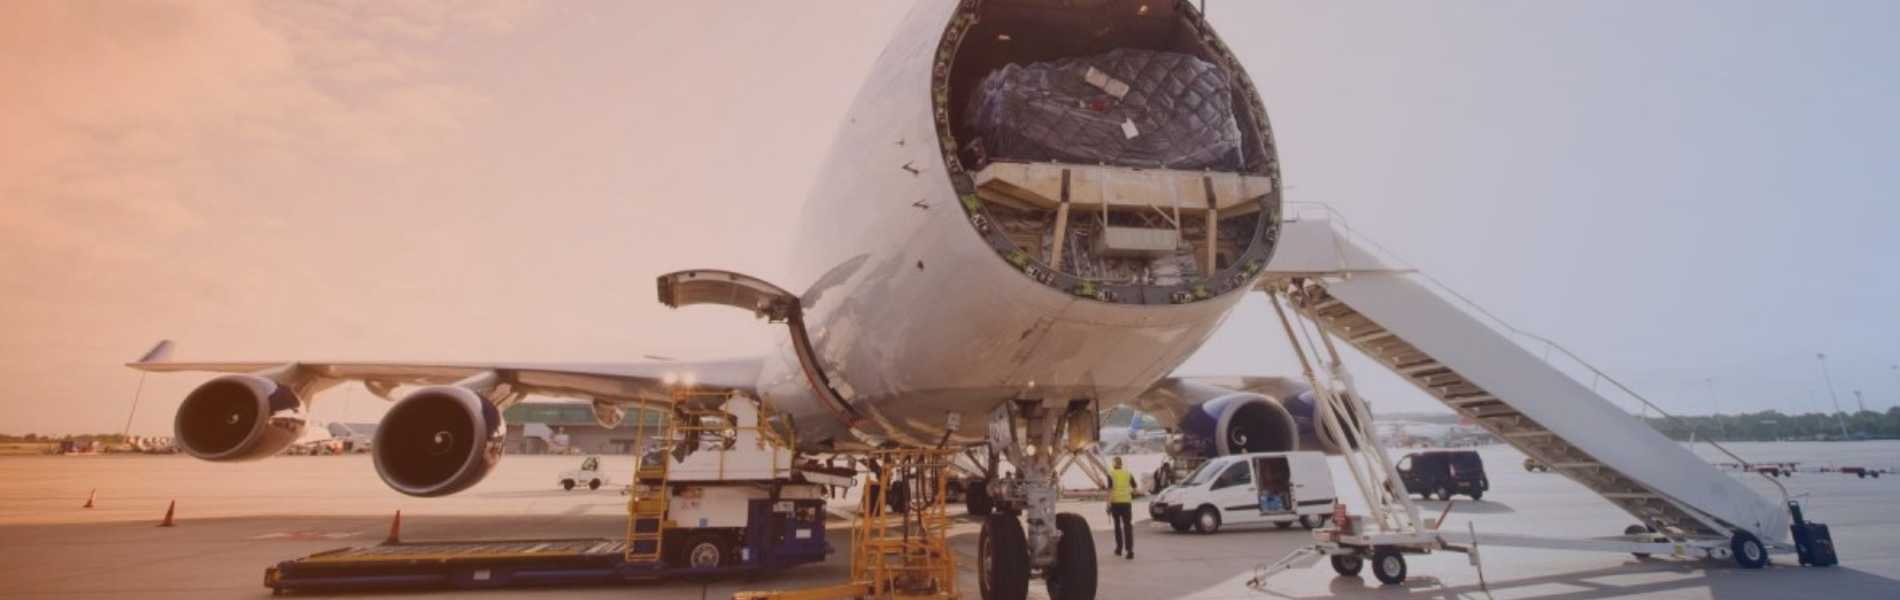 MANAGEMENT AND SOLUTIONS IN<br/>AIR CARGO SERVICES